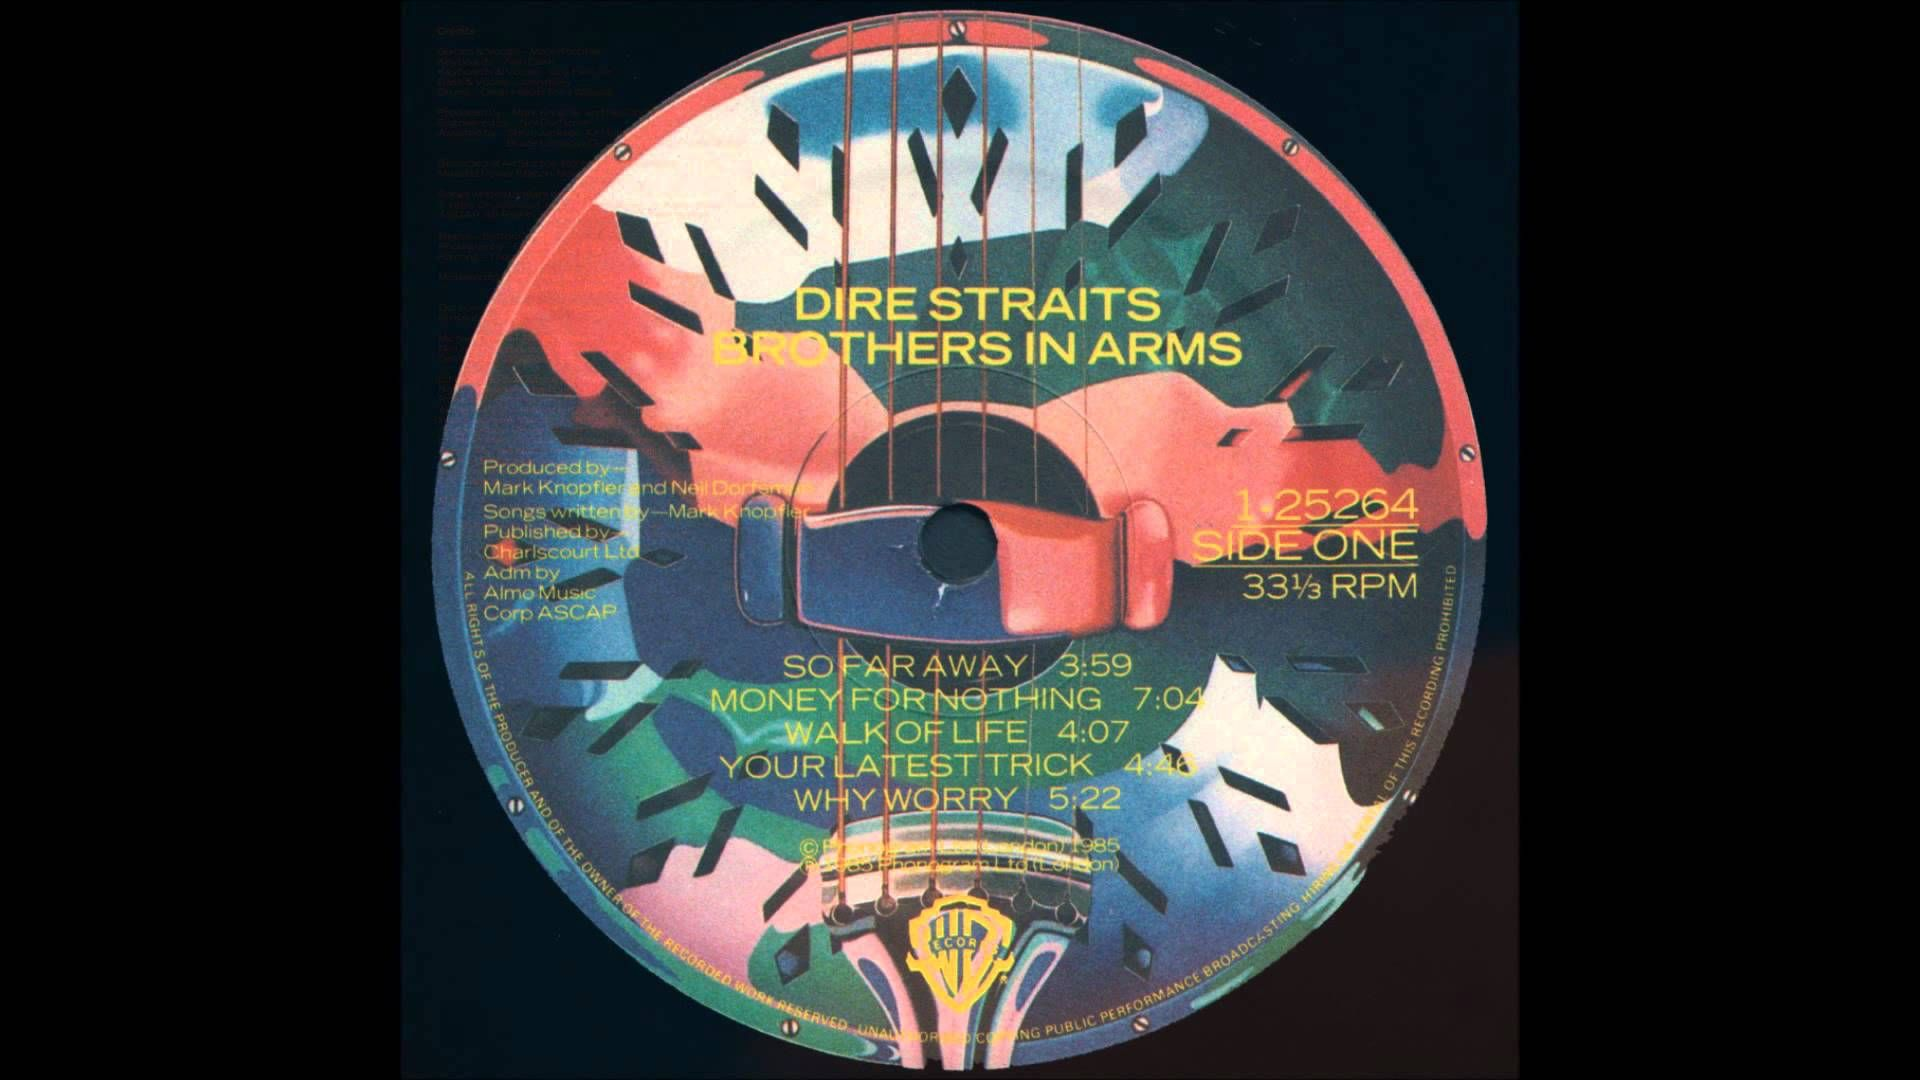 Dire Straits Brothers In Arms Full Album Vinyl Via Youtube Dire Straits Brothers In Arms Greatest Songs